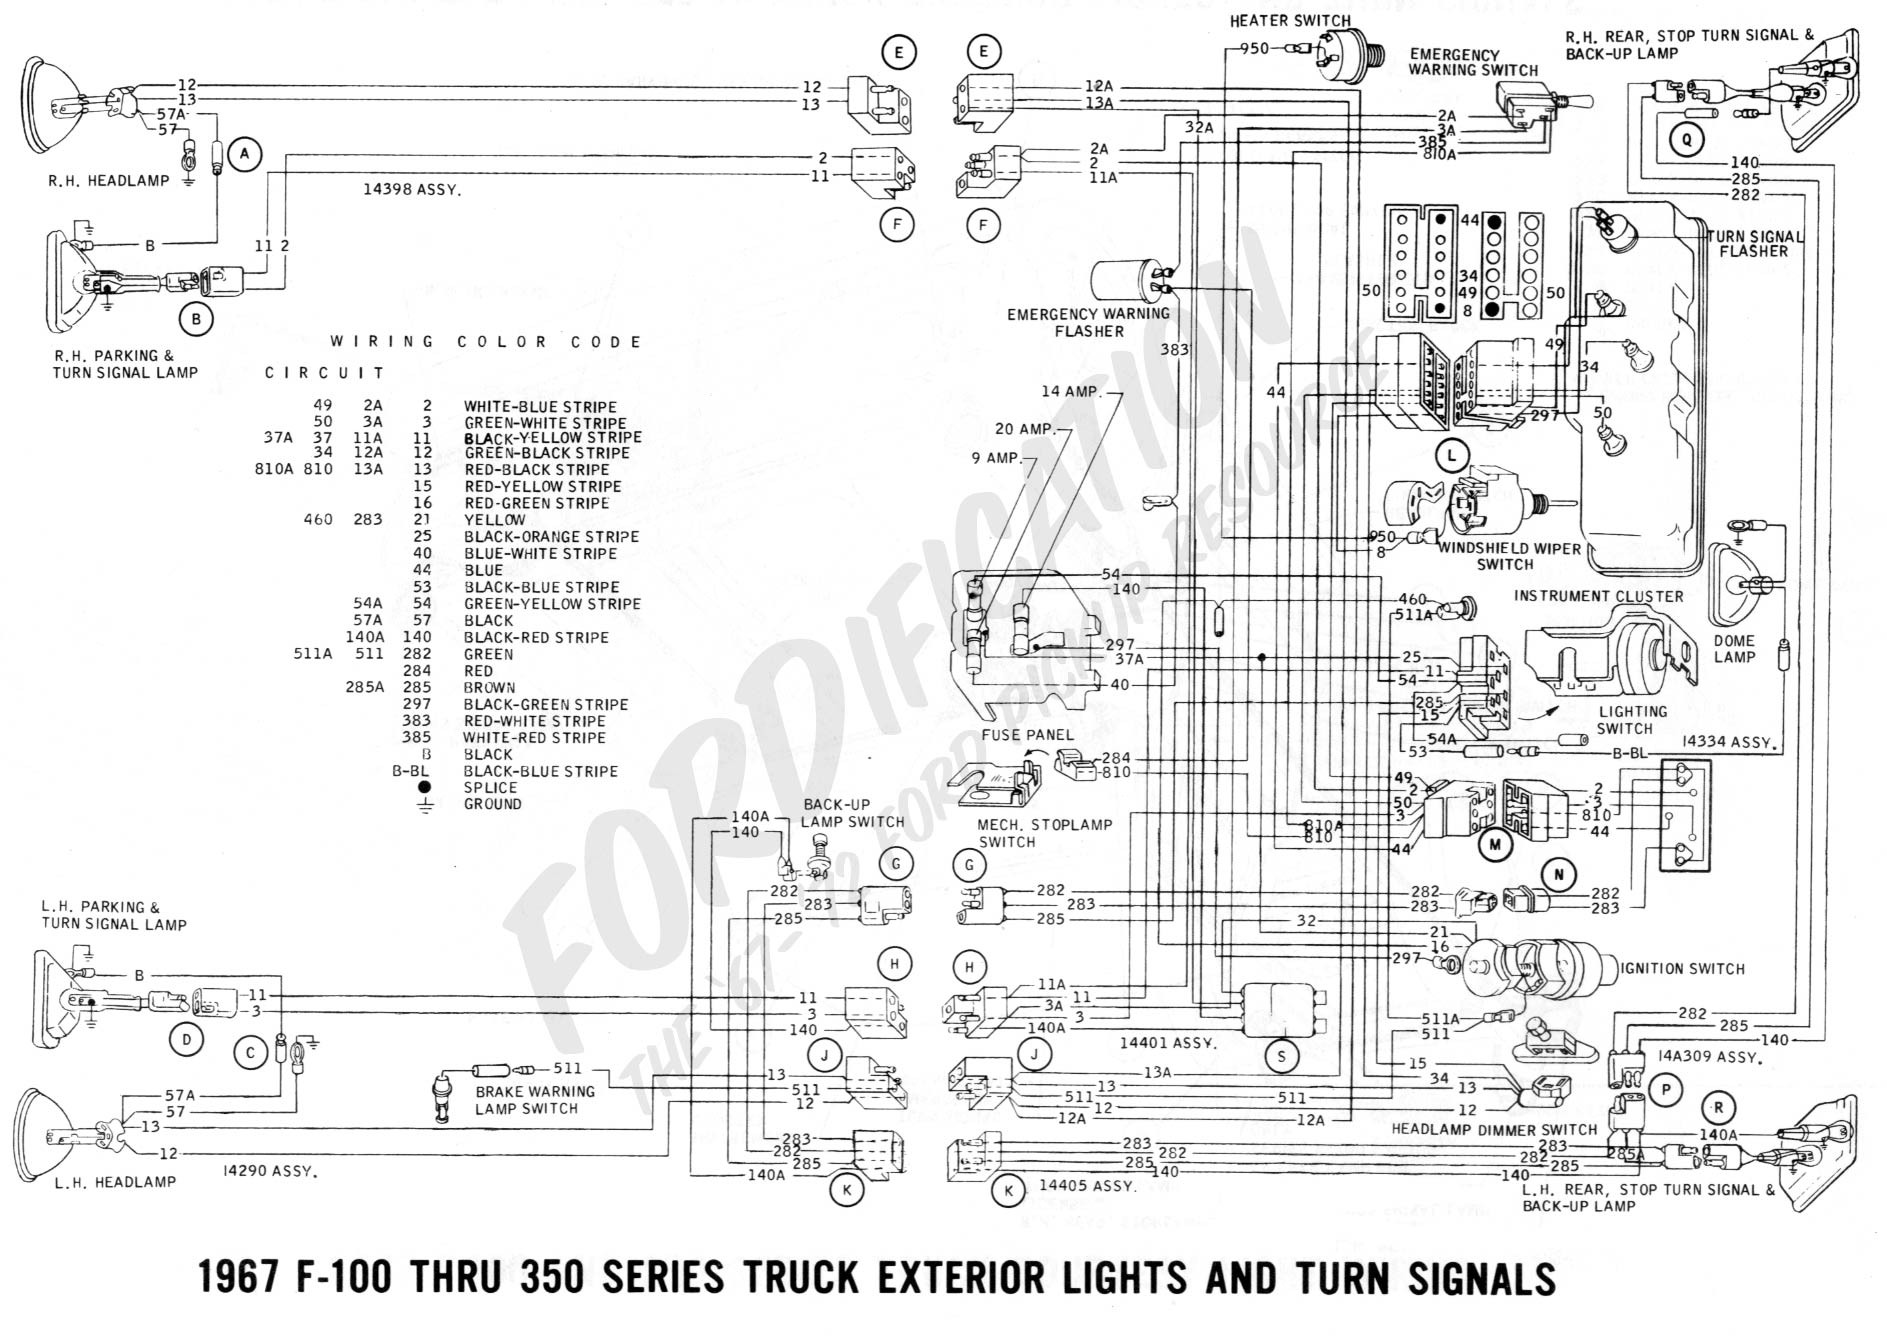 1966 ford pick up wiring diagram wiring diagram g9 1968 F100 Wiring Harness 1966 ford pickup wiring diagram wiring diagram g11 66 f100 wiring diagram 1956 ford turn signal